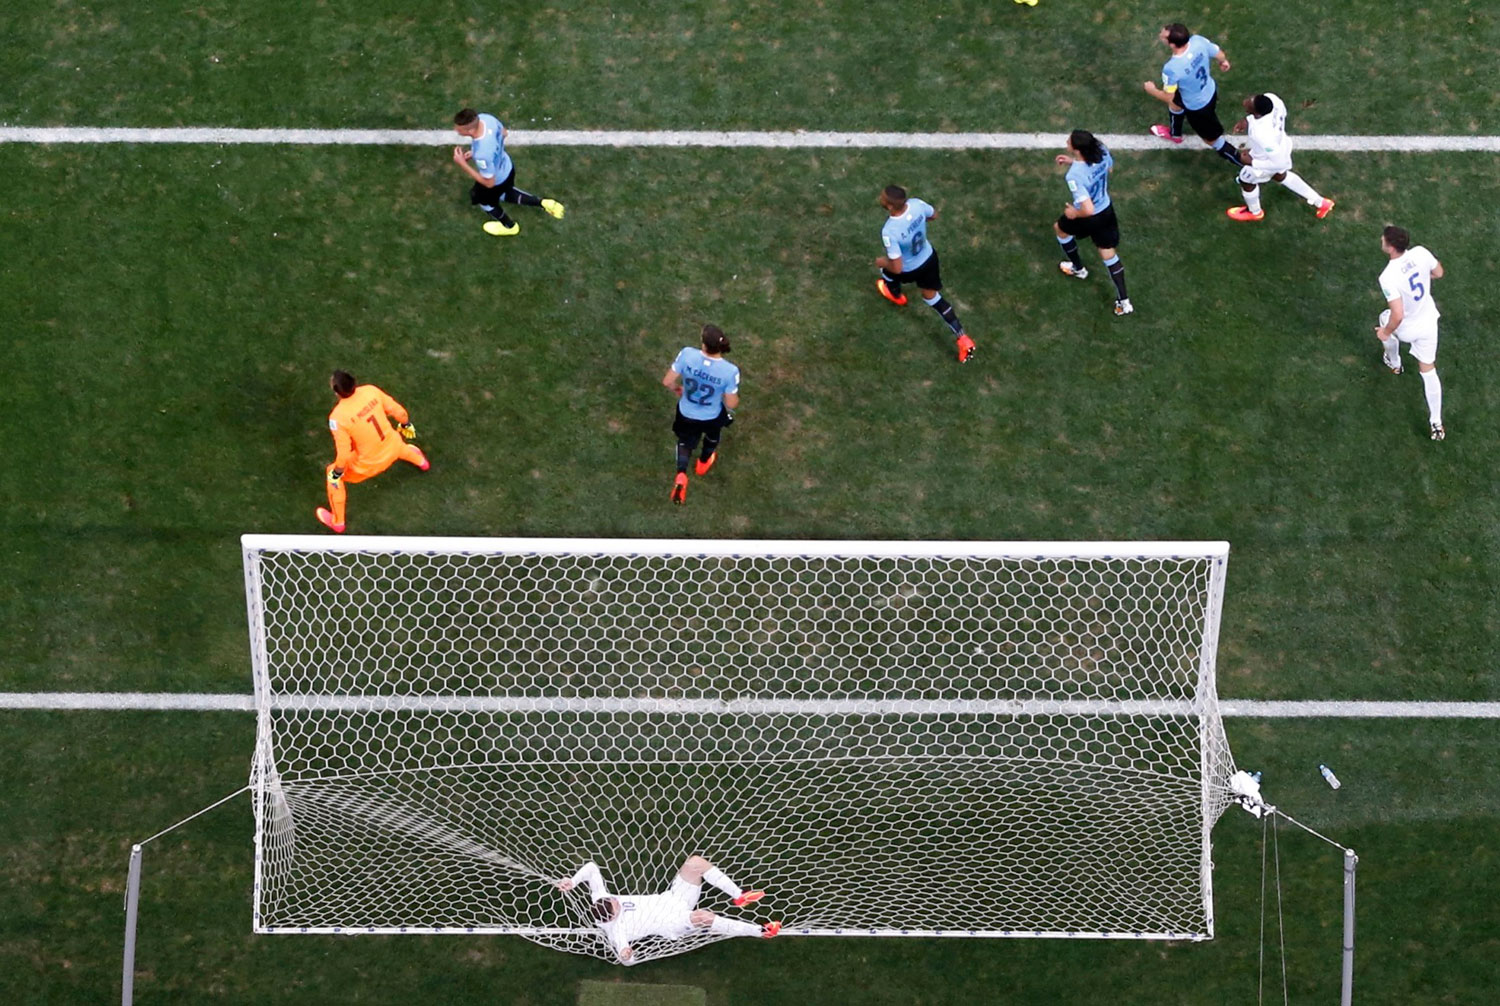 England's Wayne Rooney tangles himself in the net after failing to score a goal against Uruguay during their match at the Corinthians arena in Sao Paulo on June 19, 2014.